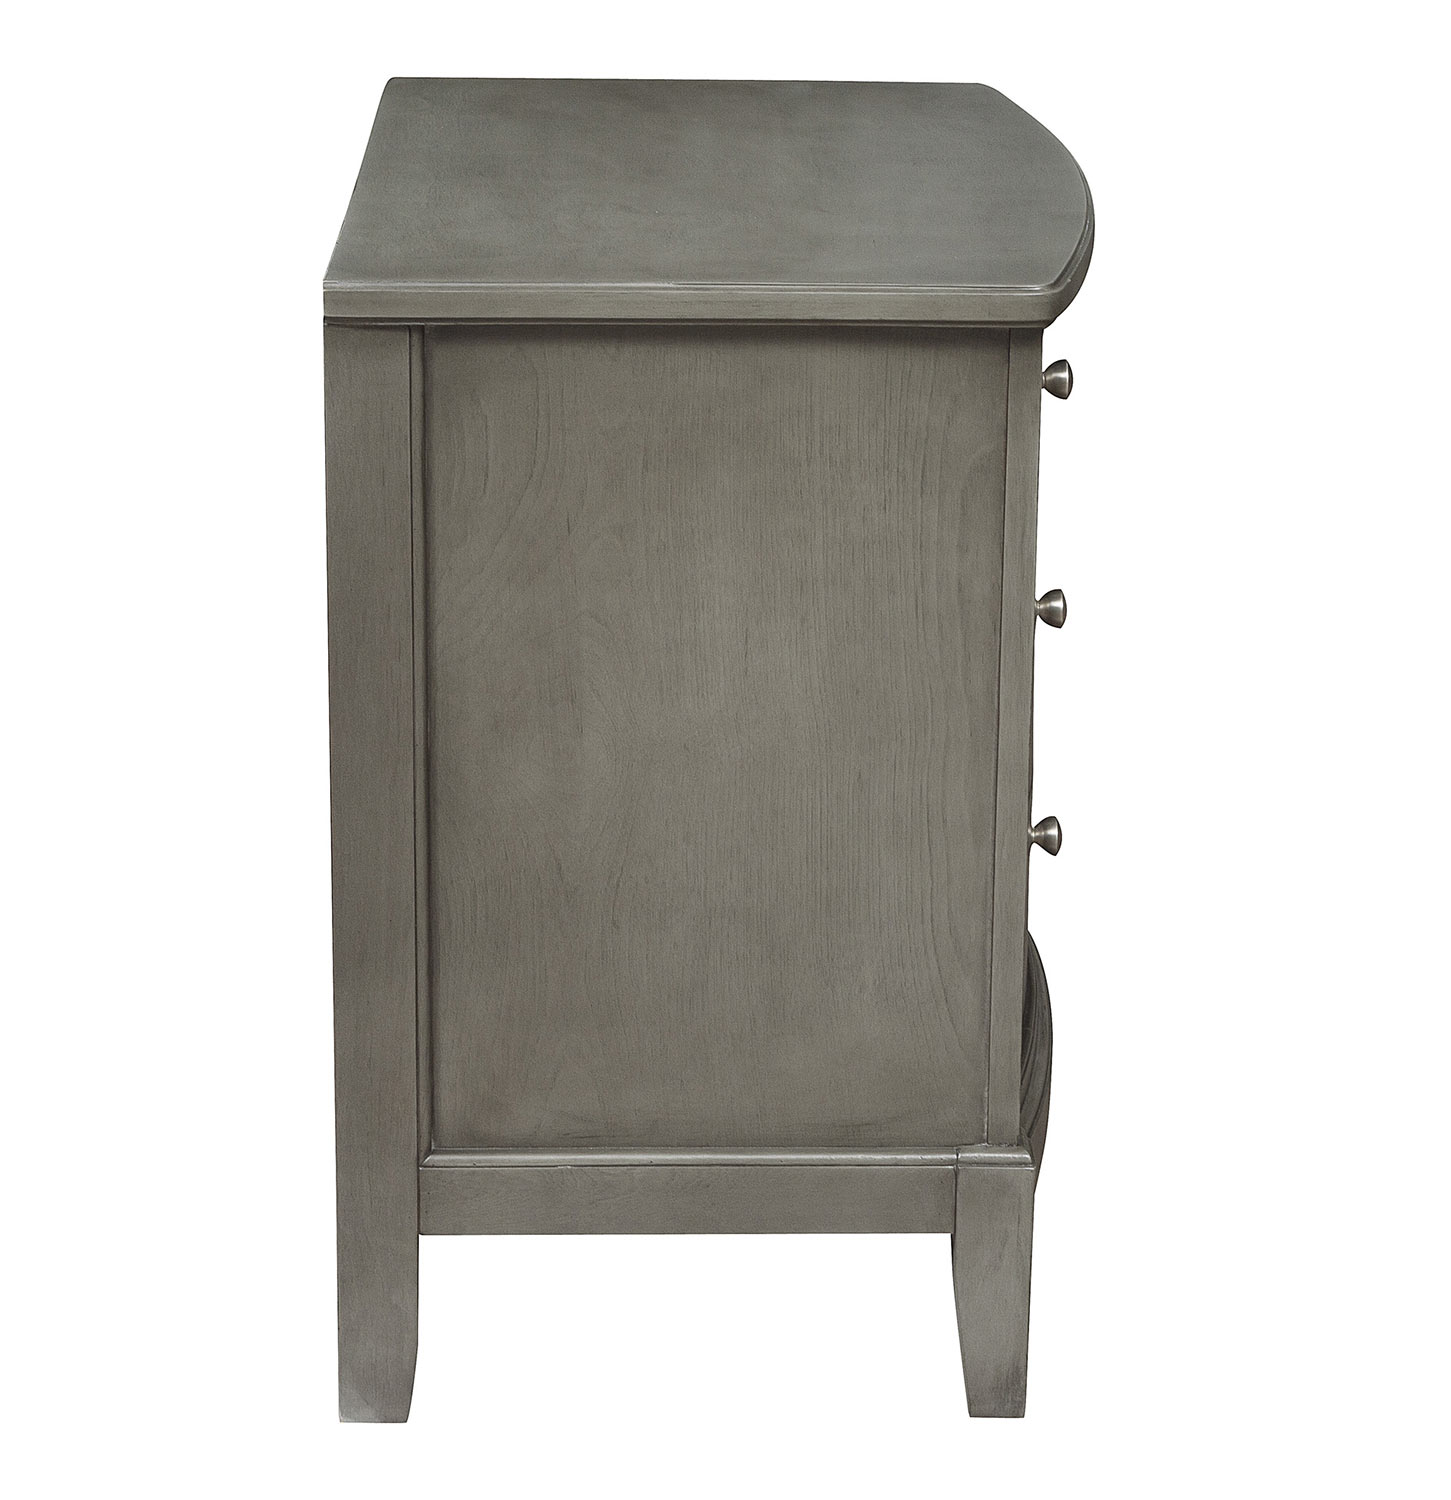 Homelegance Cotterill Night Stand - Gray Finish over Birch Veneer